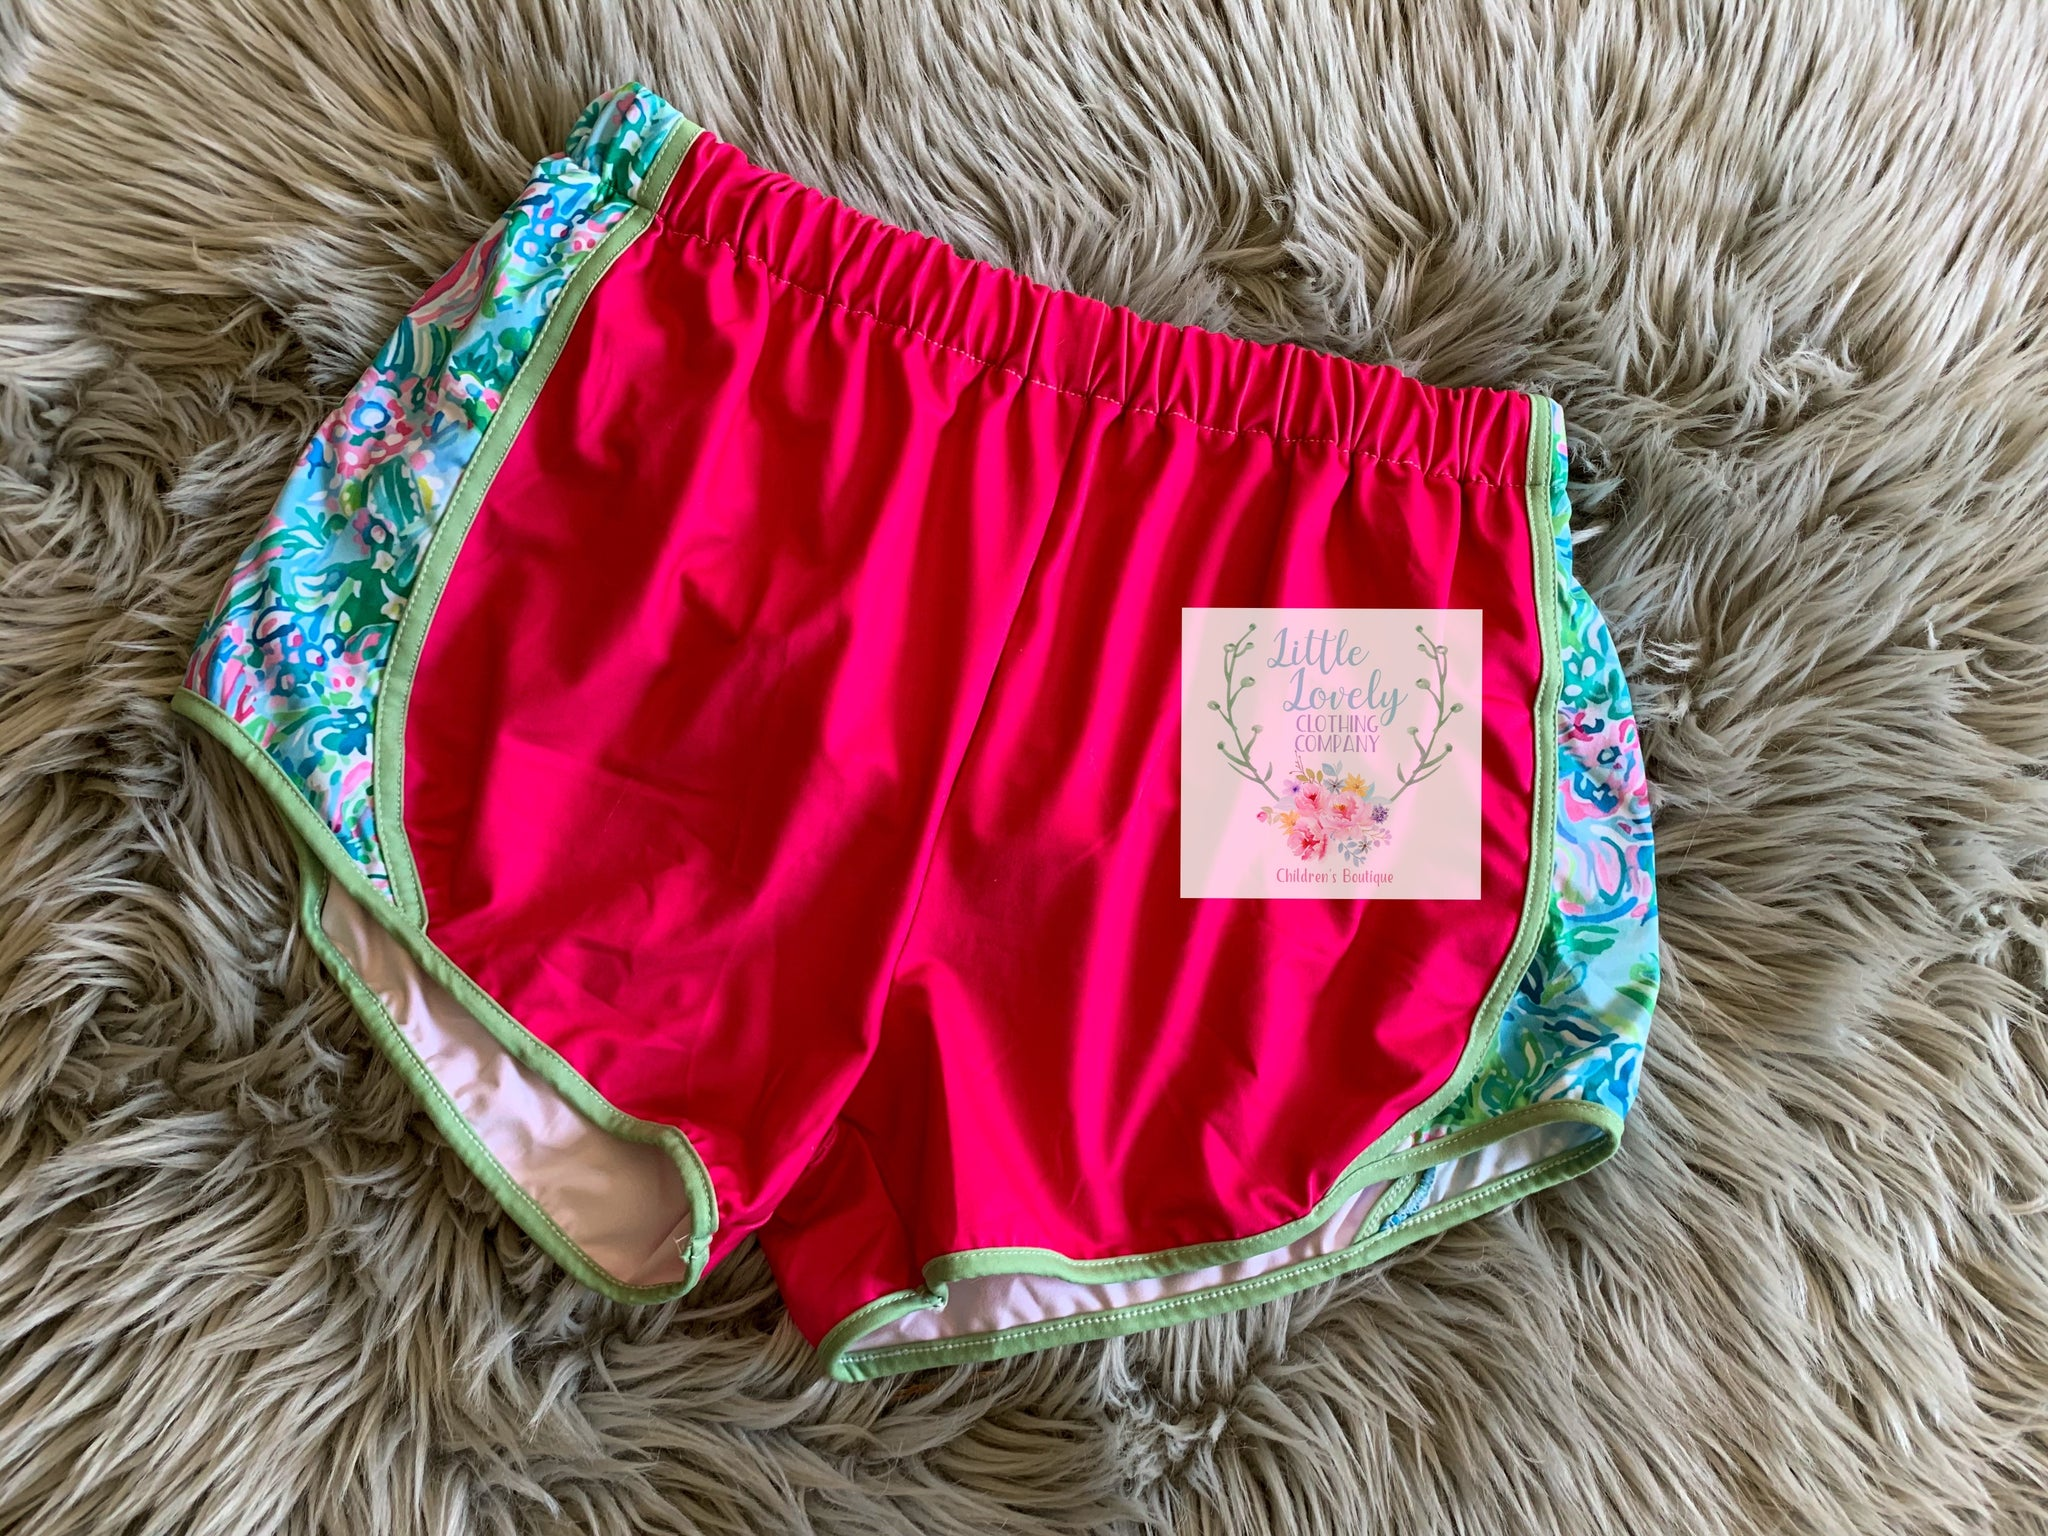 Lilly Ladies Lounge Shorts